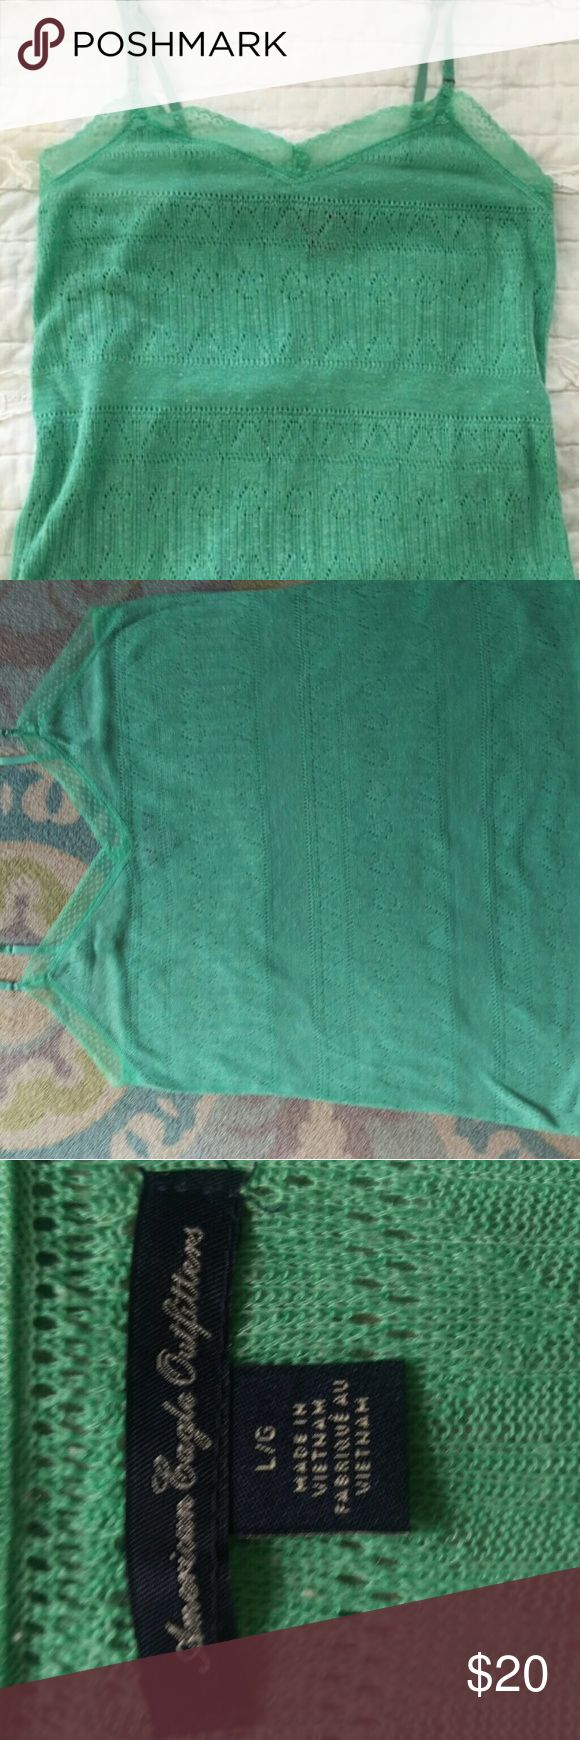 A mint green laced tank top A mint green skinny strapped laced tank top from amercan eagle outlet American Eagle Outfitters Tops Tank Tops